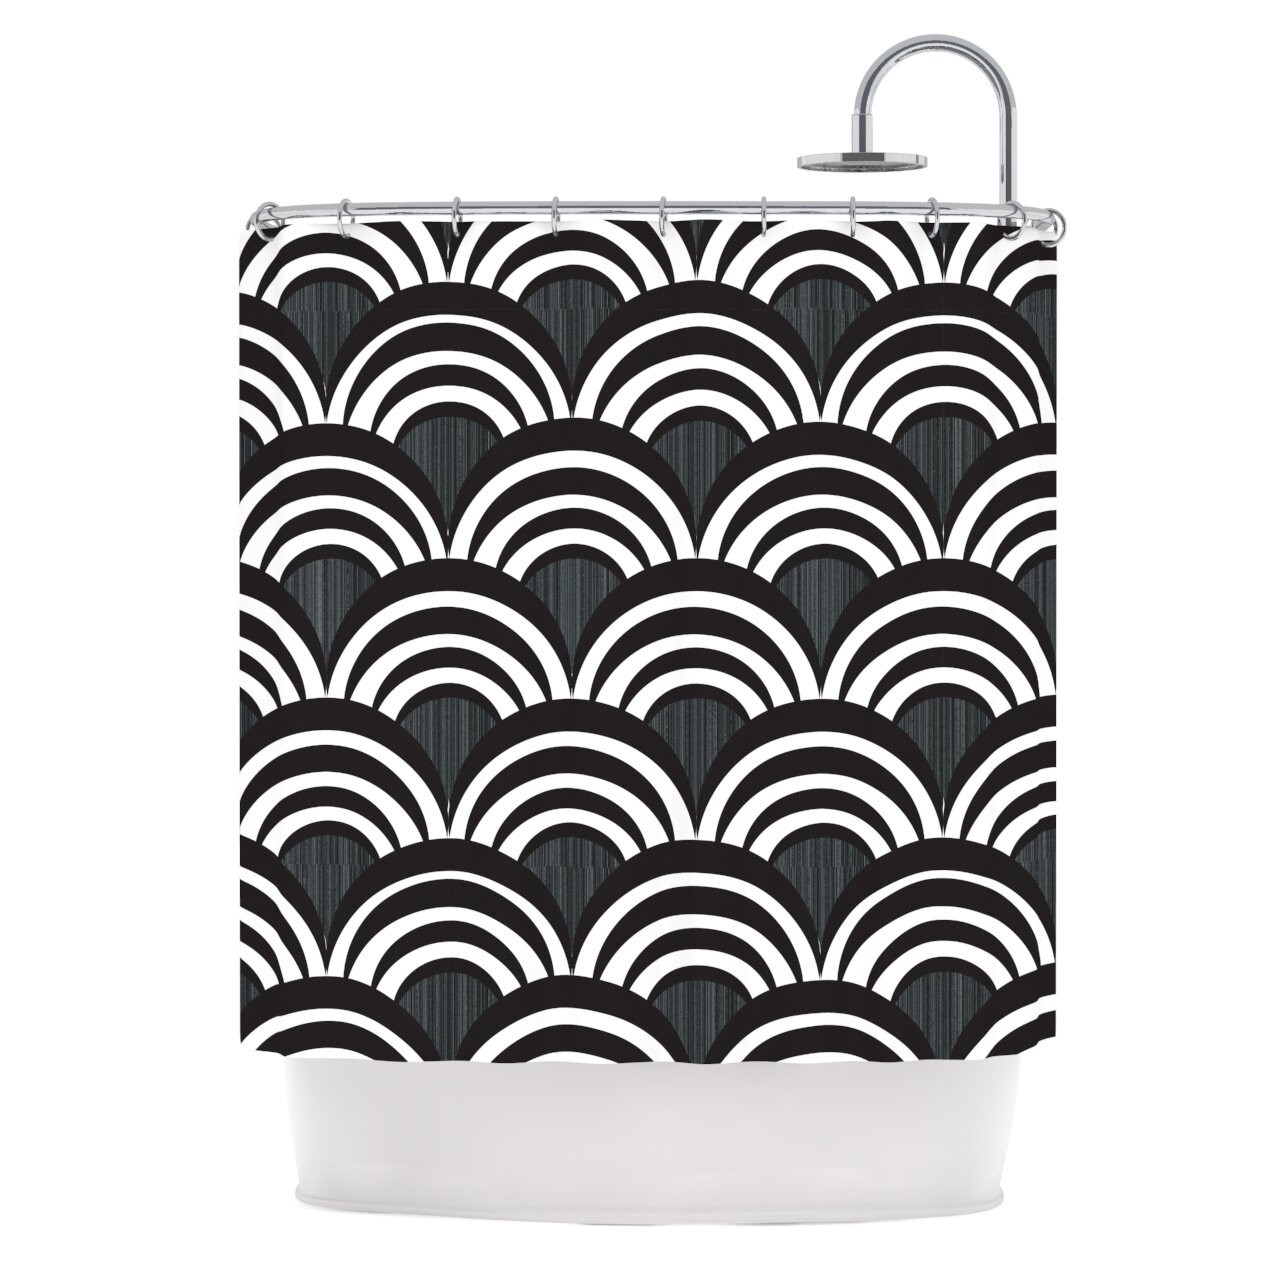 Art Deco Shower Curtain